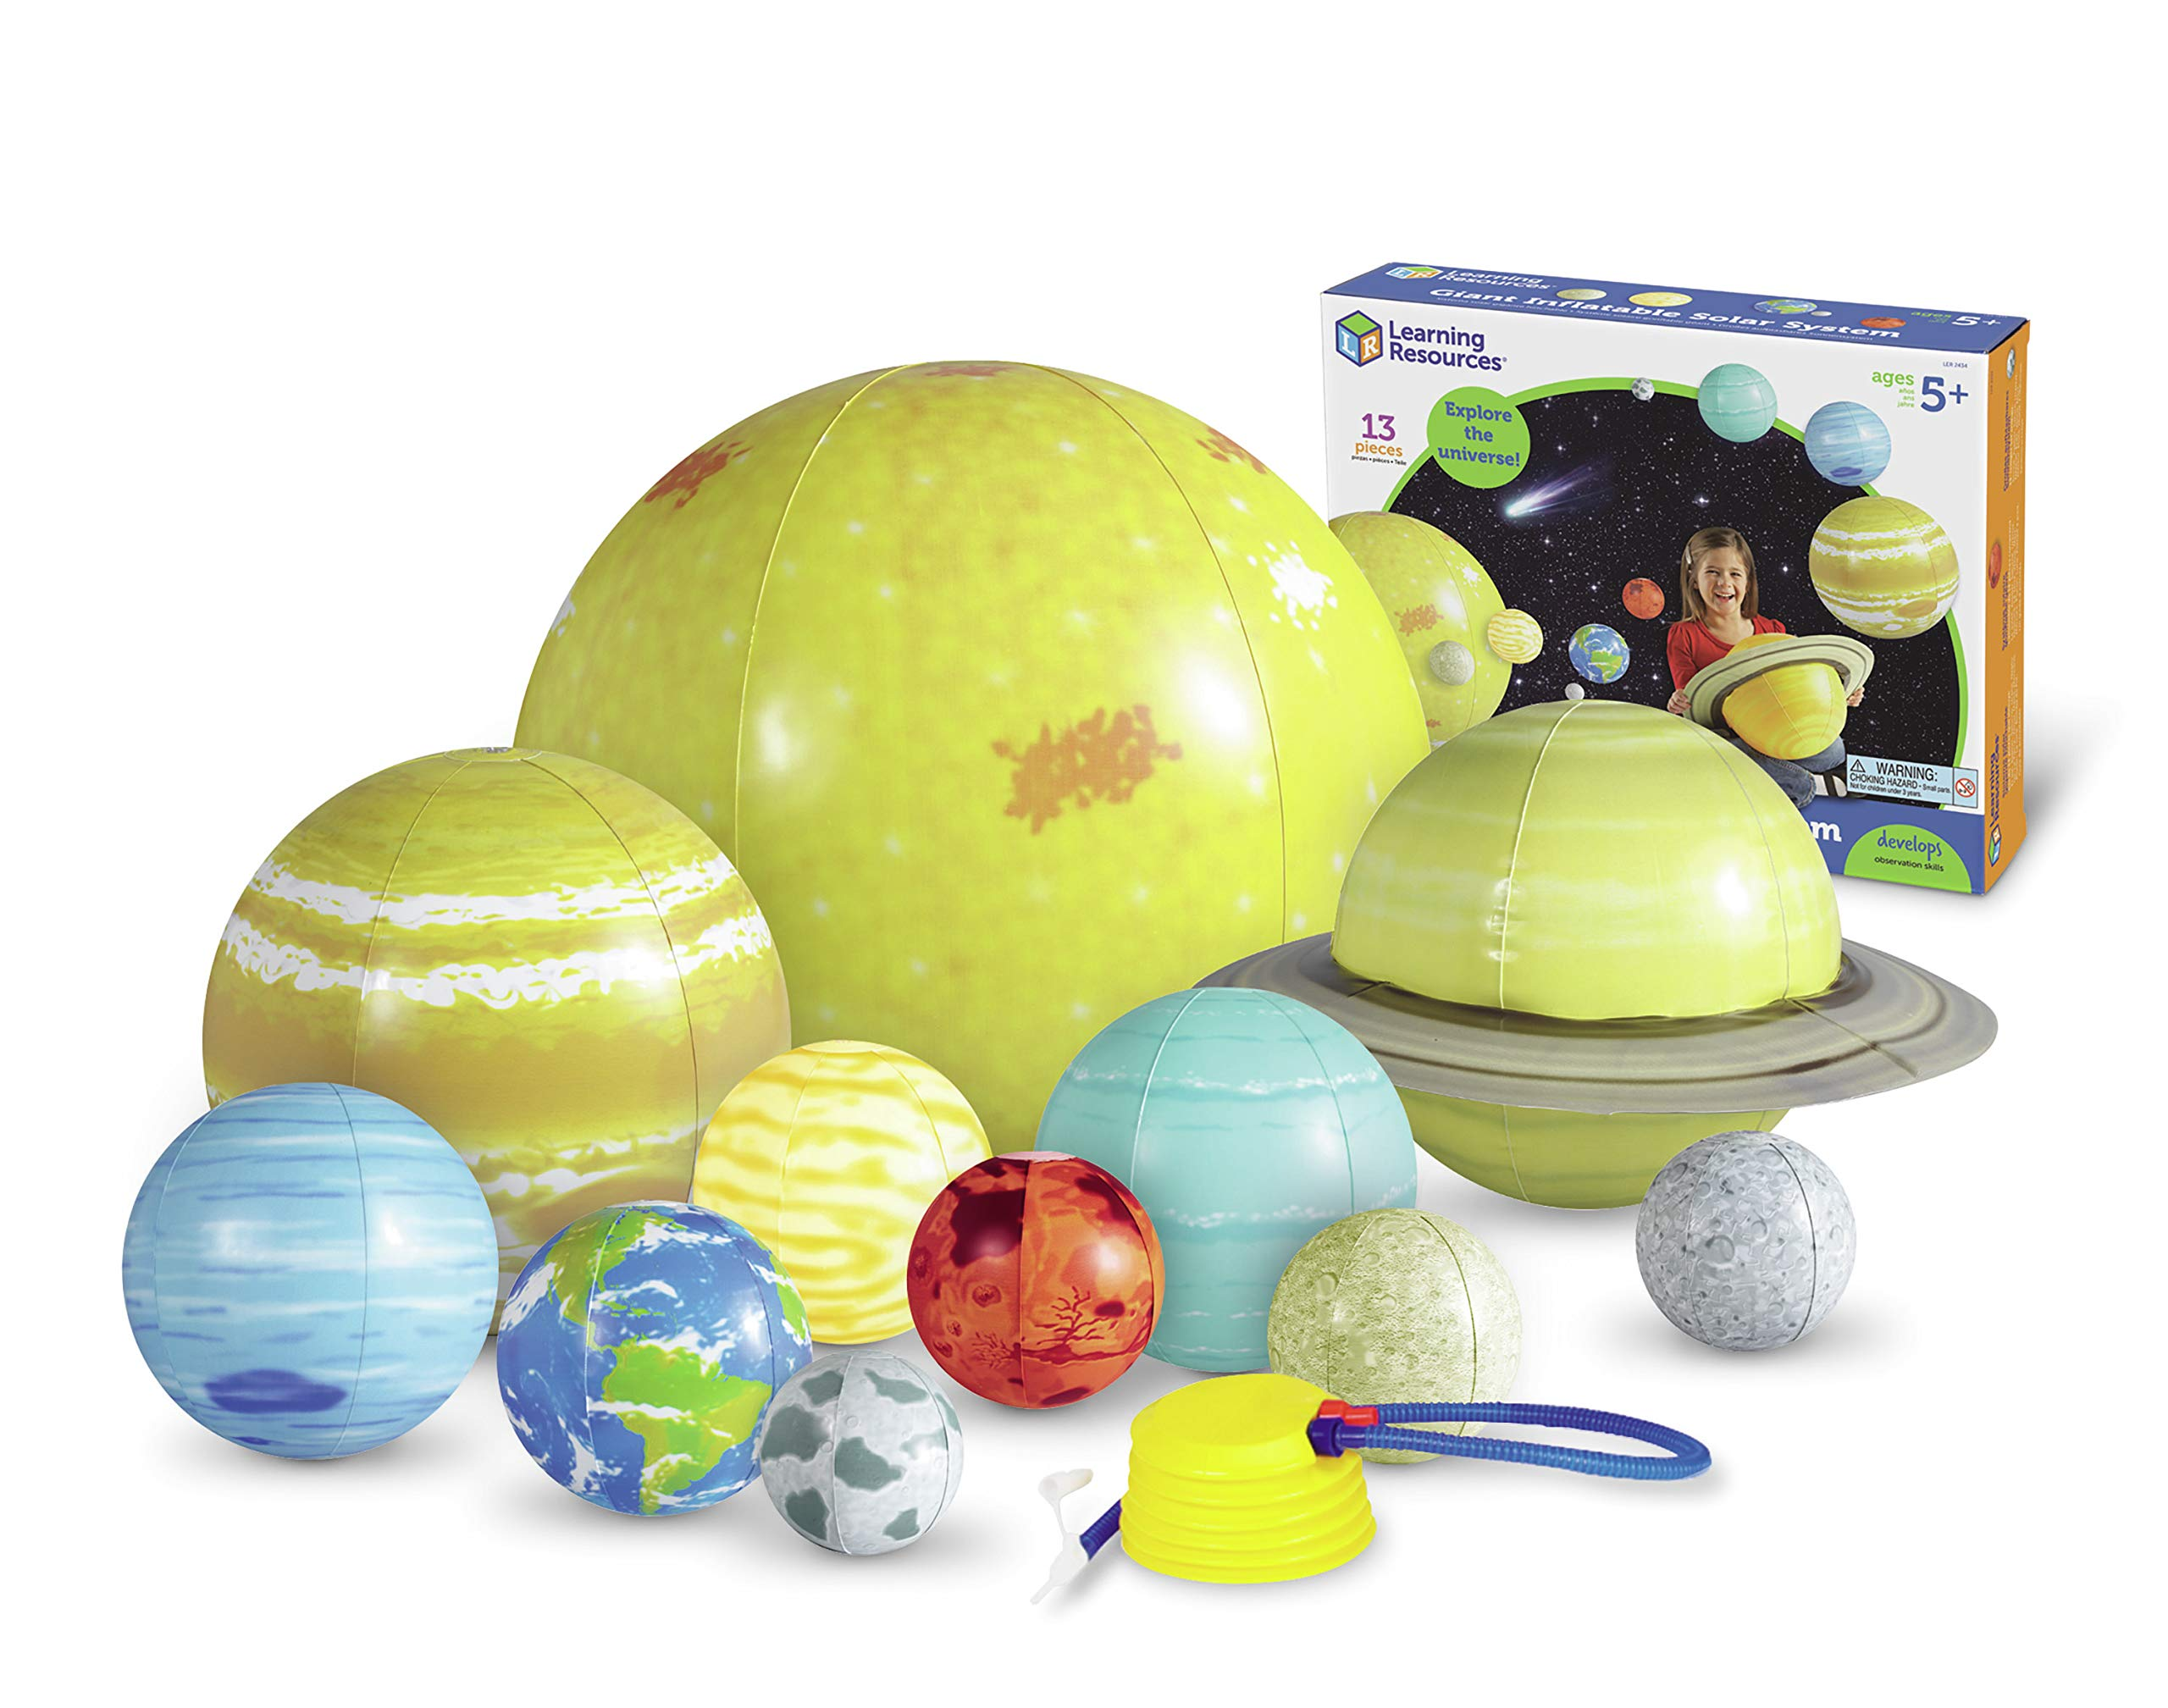 Learning Resources Giant Inflatable Solar System, 12 Pieces, 8 Planets, Grades K+/Ages 5+ by Learning Resources